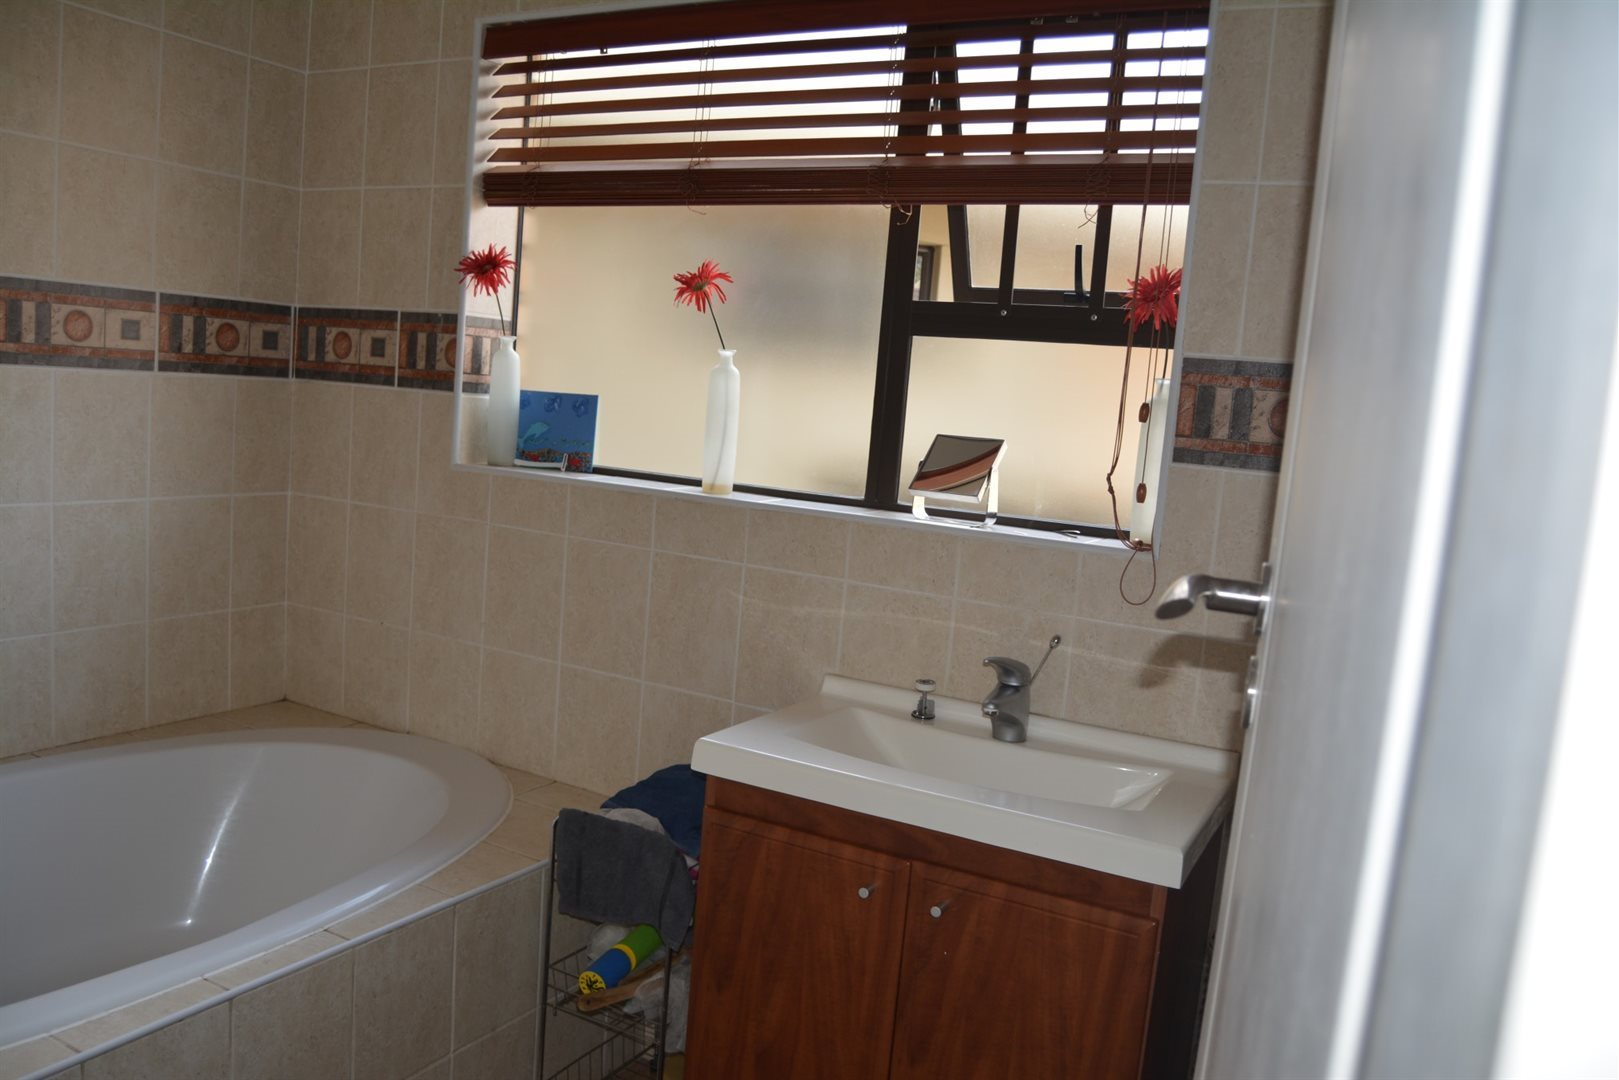 Three Rivers East property for sale. Ref No: 13229414. Picture no 5